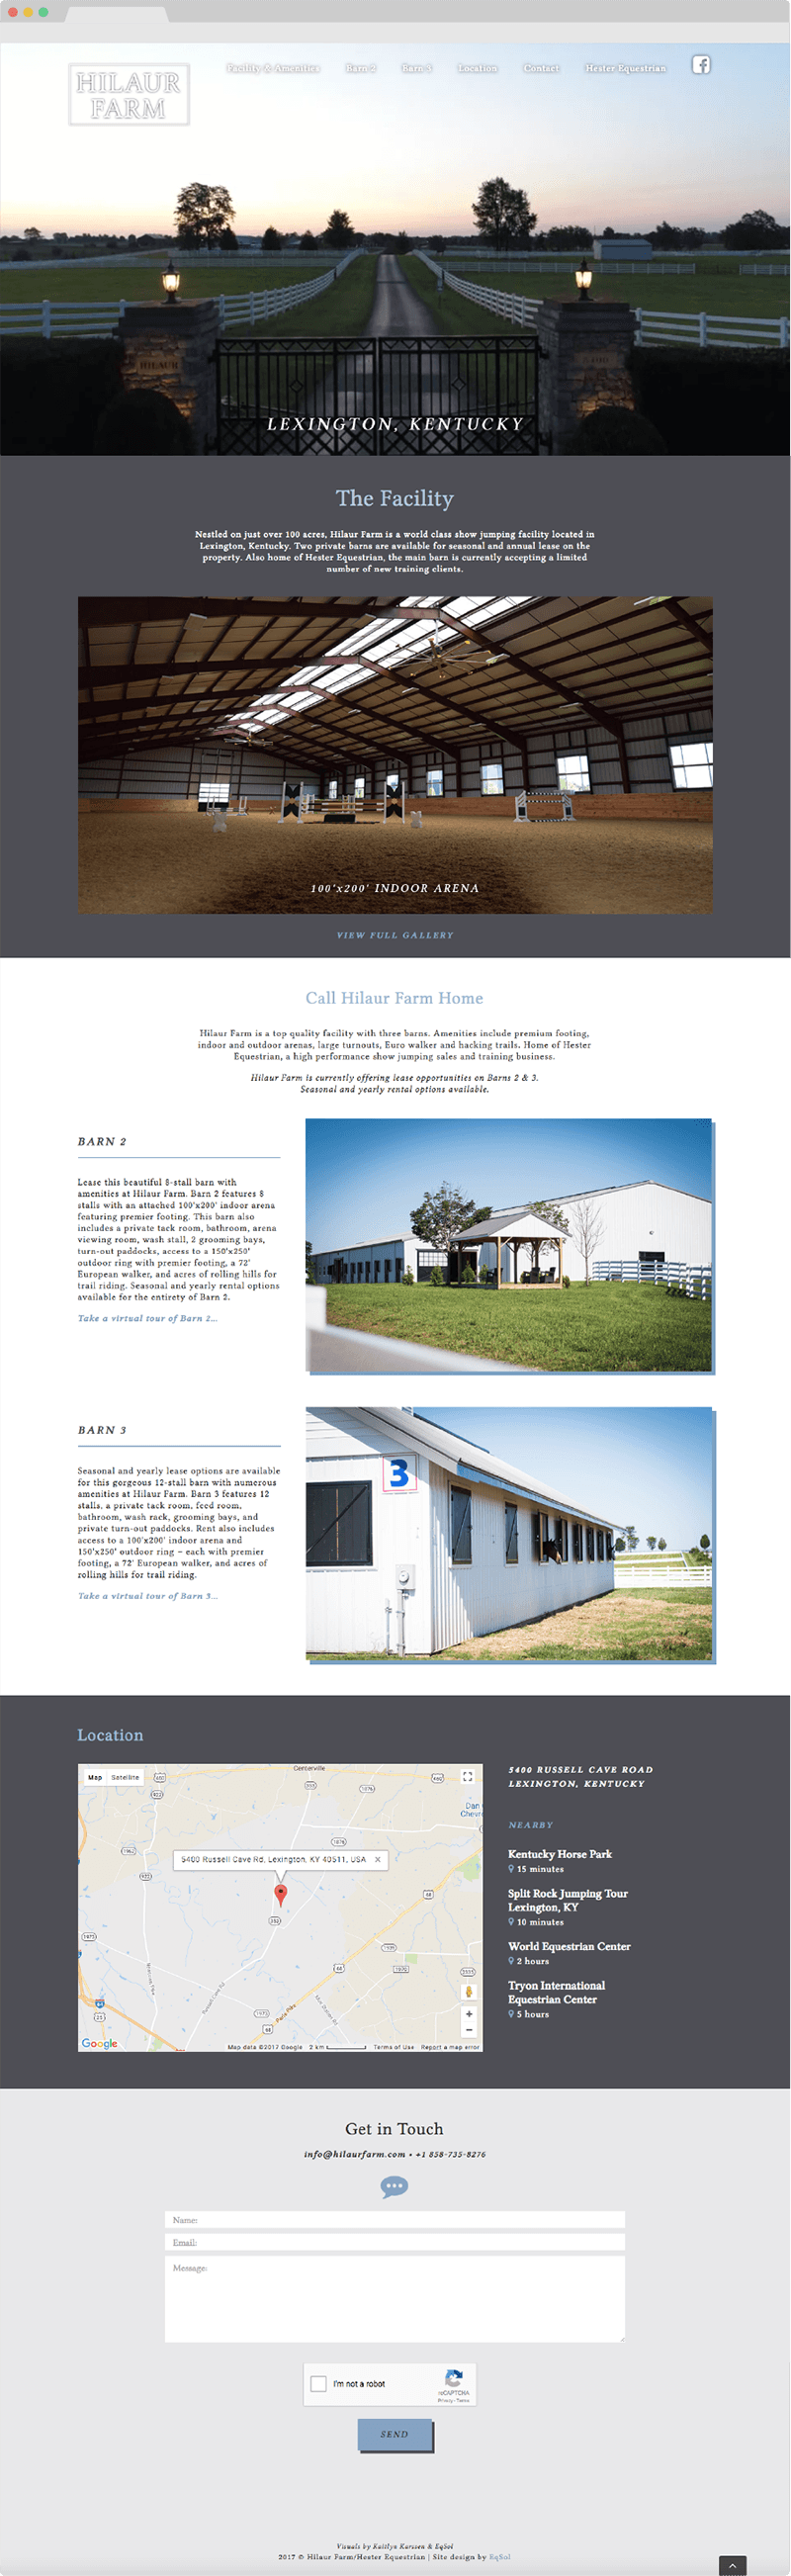 hilaur farm eqsol website design